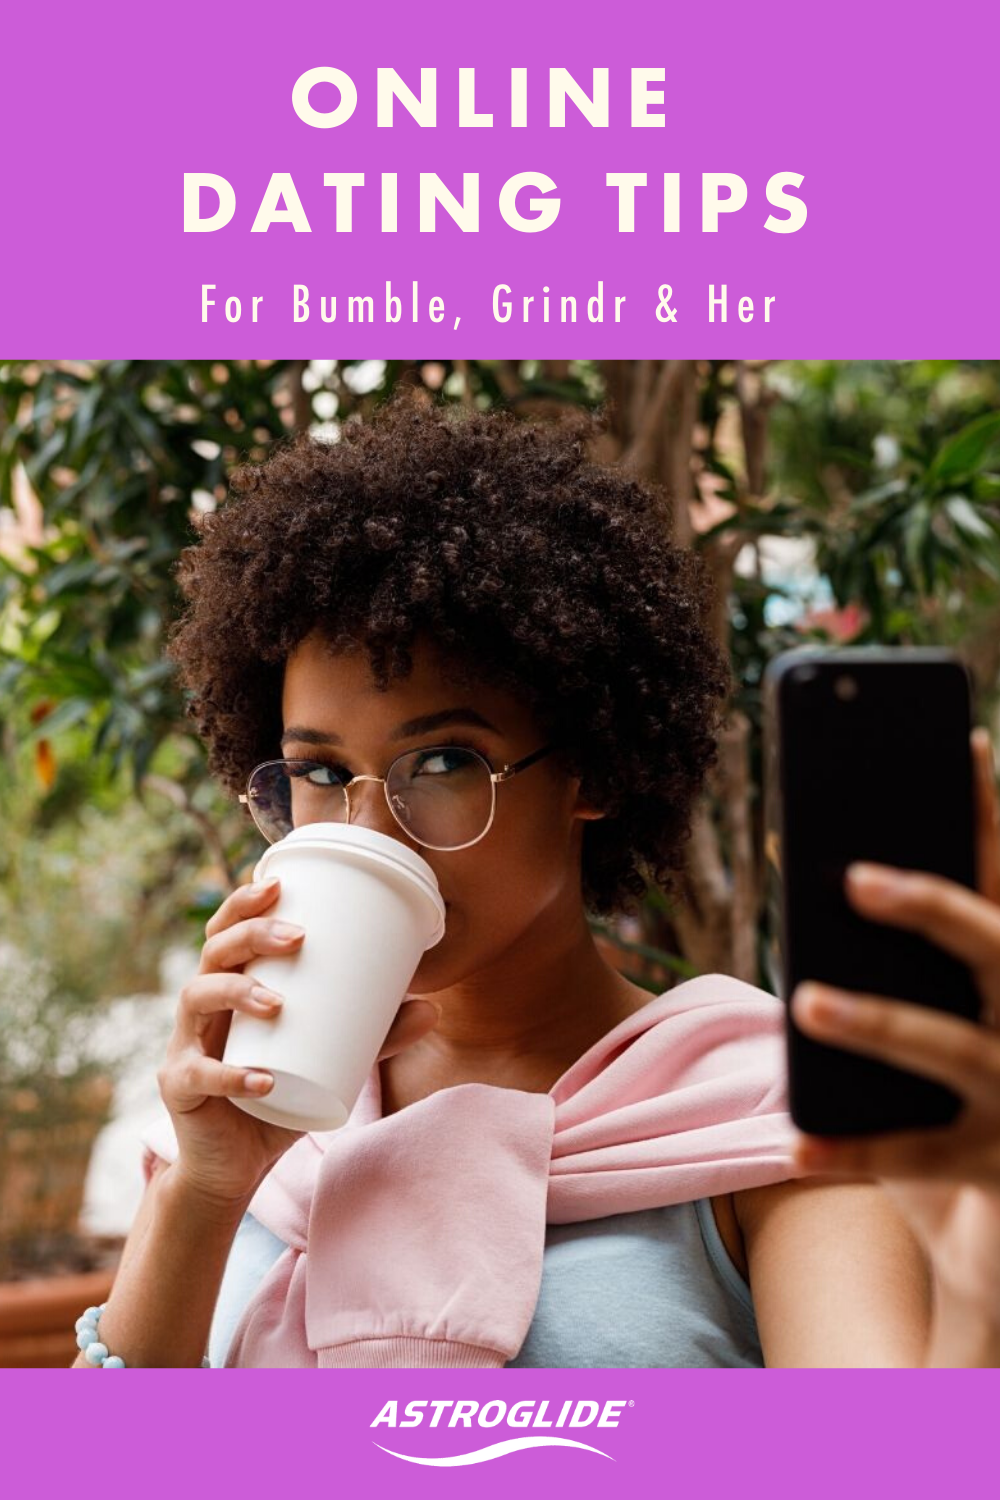 Online Dating Tips for Bumble, Grindr & Her in 2020